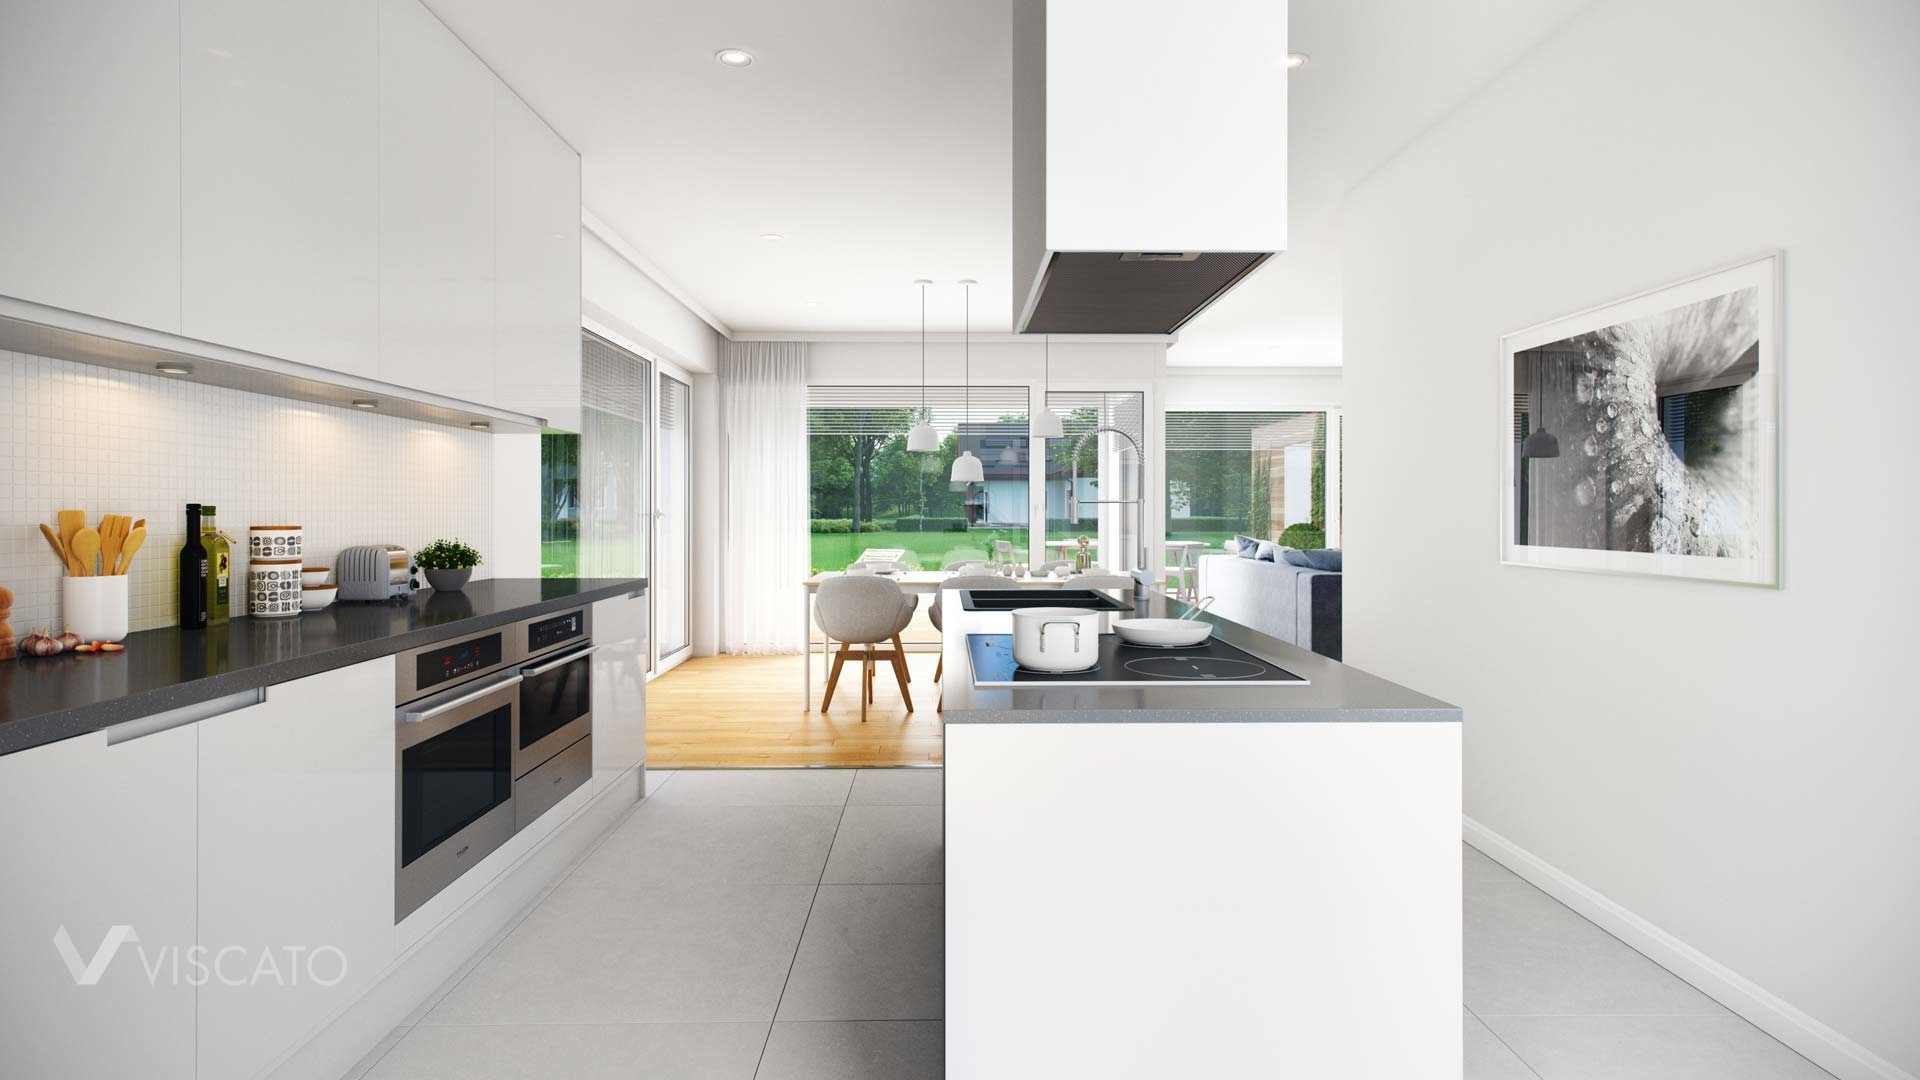 3D visualization of a kitchen with a modern island- Viscato